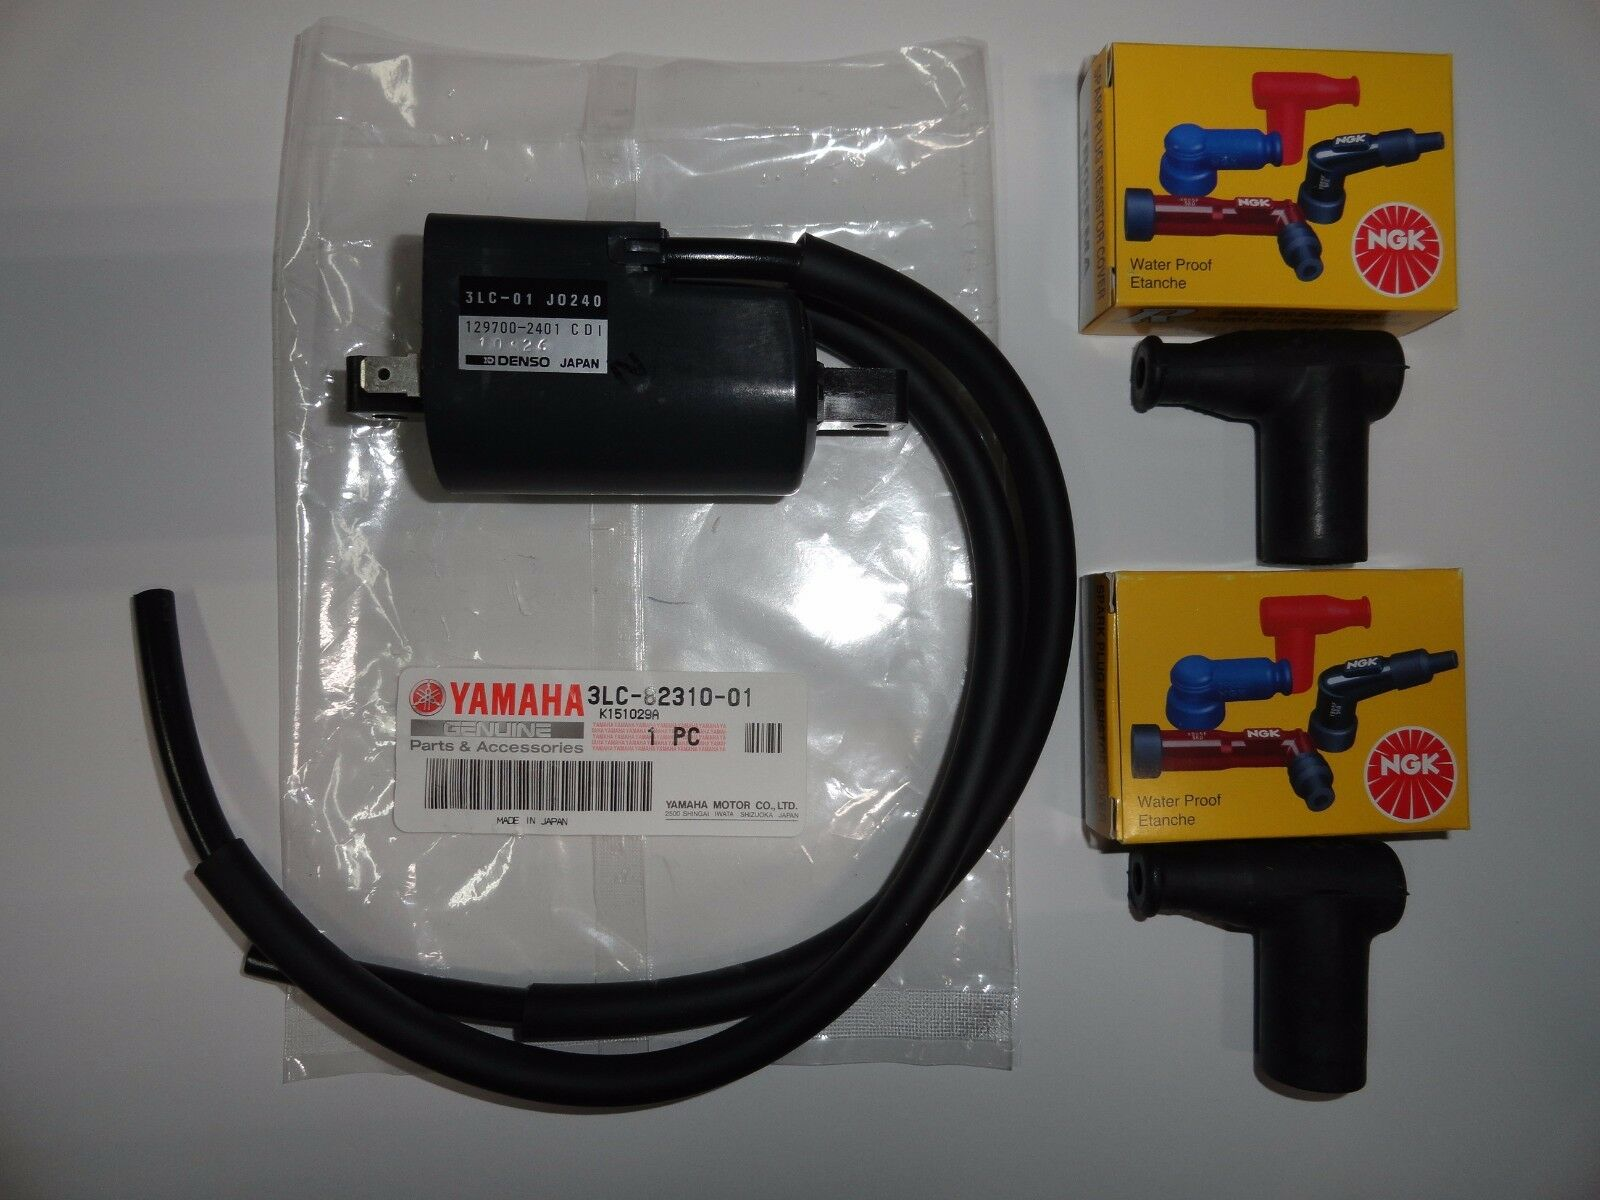 Ngk Spark Plug Cap Ignition Coil Genuine Oem Yamaha Banshee Yfz350 Wire Harness 1 Of 1only 2 Available